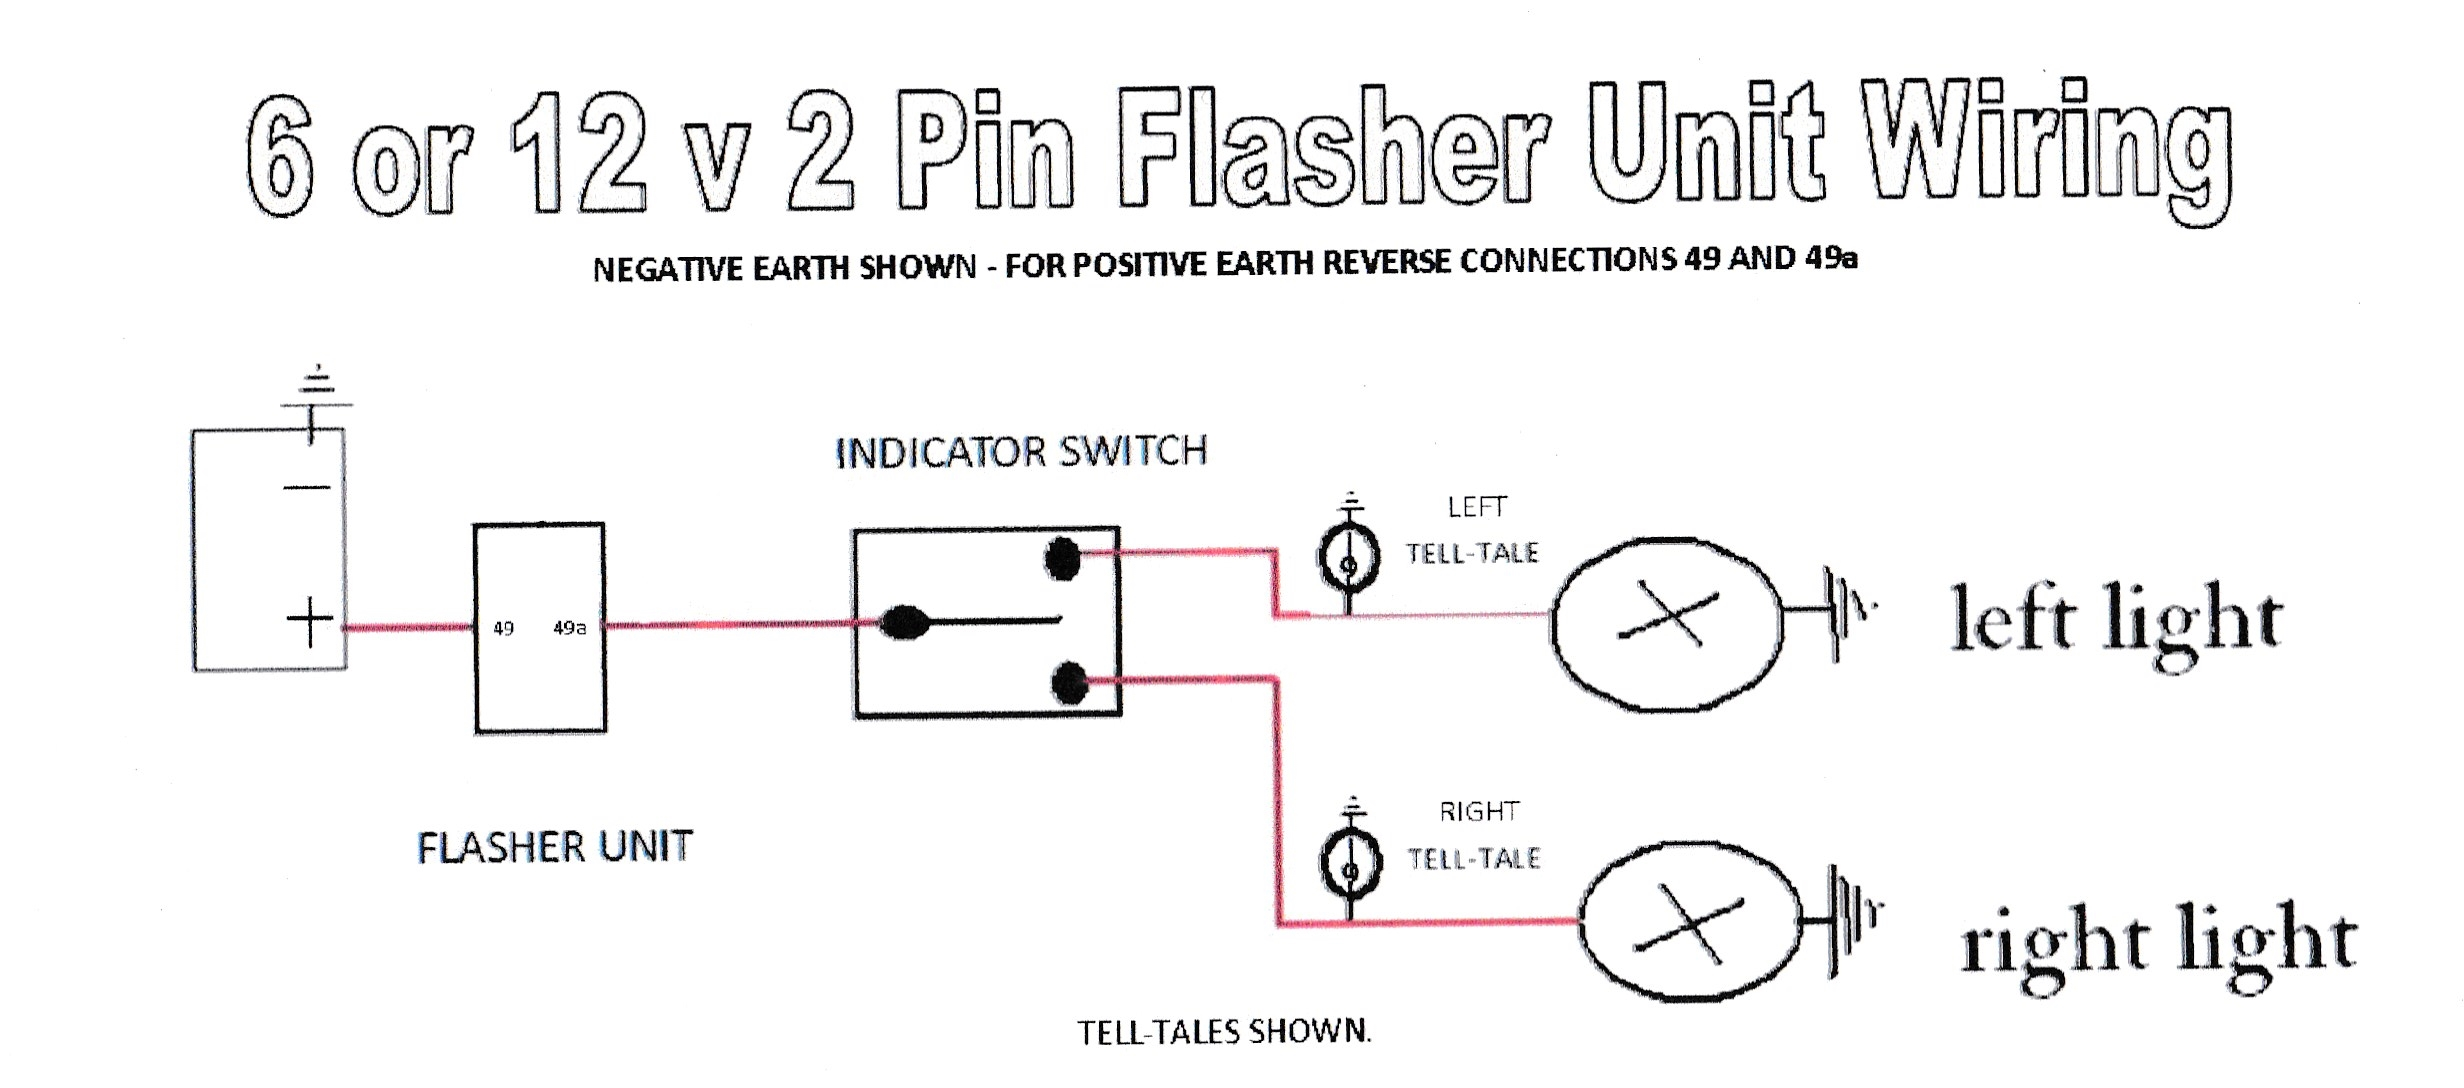 12v flasher unit wiring diagram images flasher units norwood pin flasher unit wiring diagram get image about